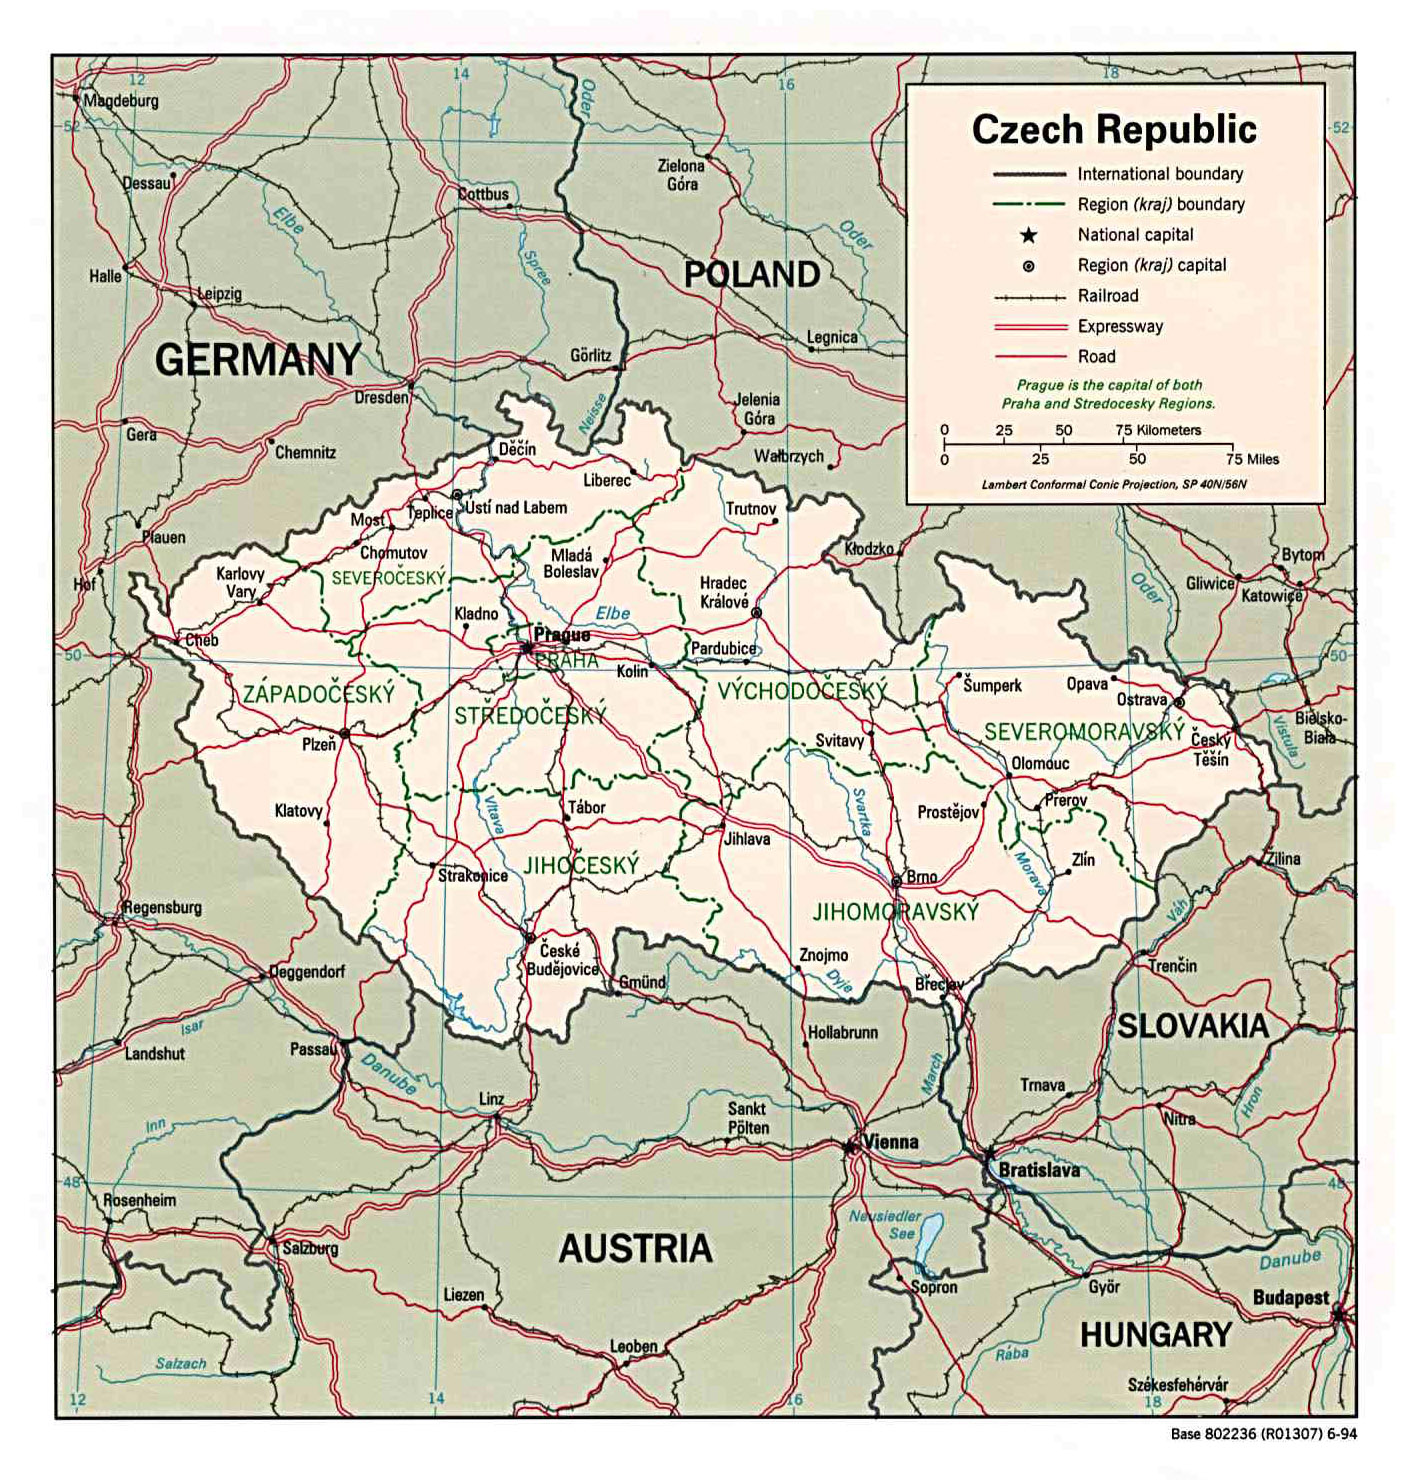 map of czech republic and austria Maps Of Czech Republic Detailed Map Of The Czech Republic In map of czech republic and austria